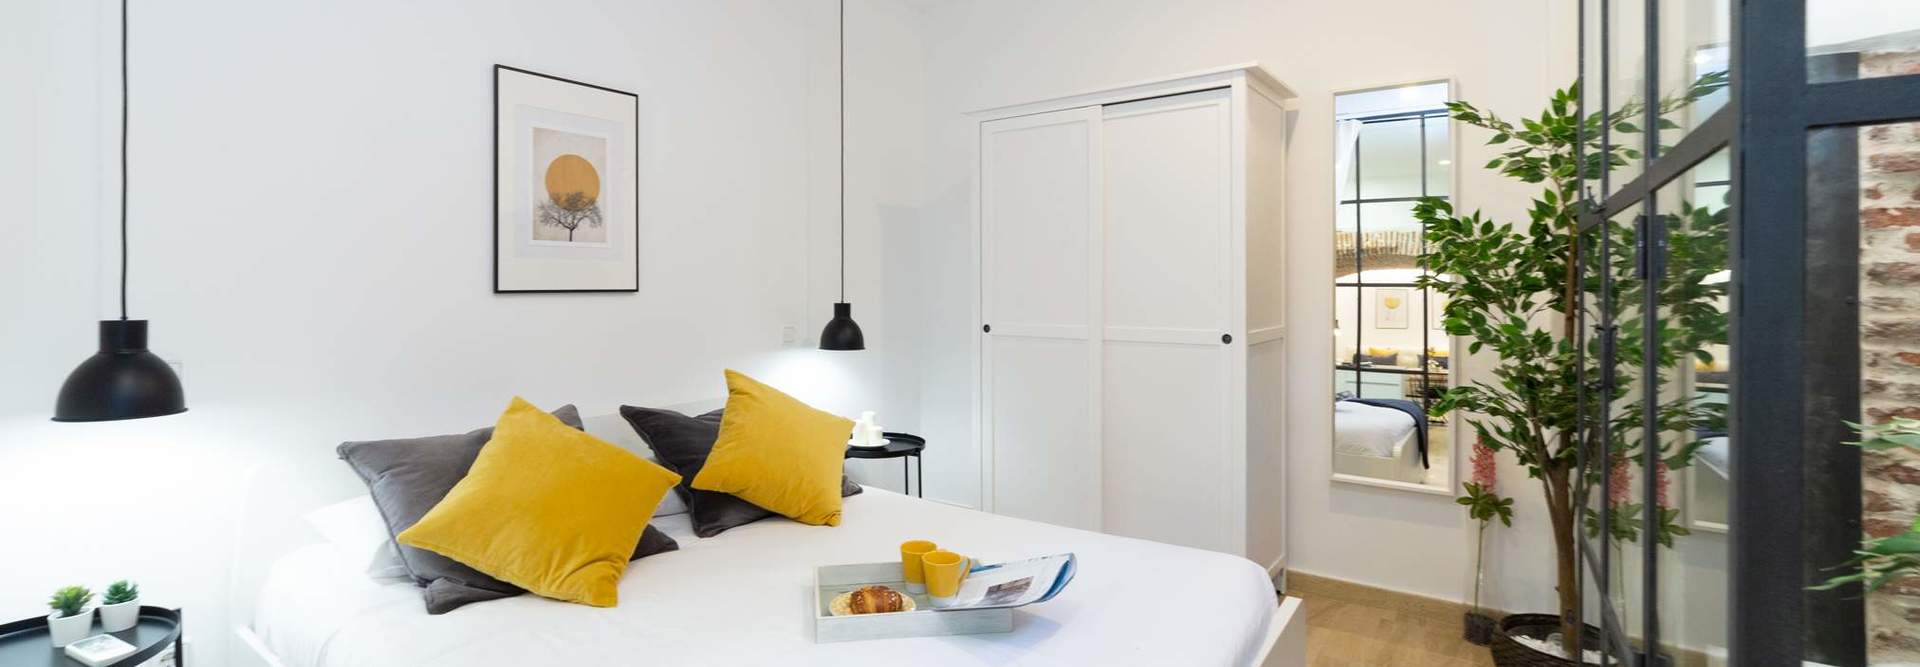 Home alquiler apartamentos madrid mad4rent 16